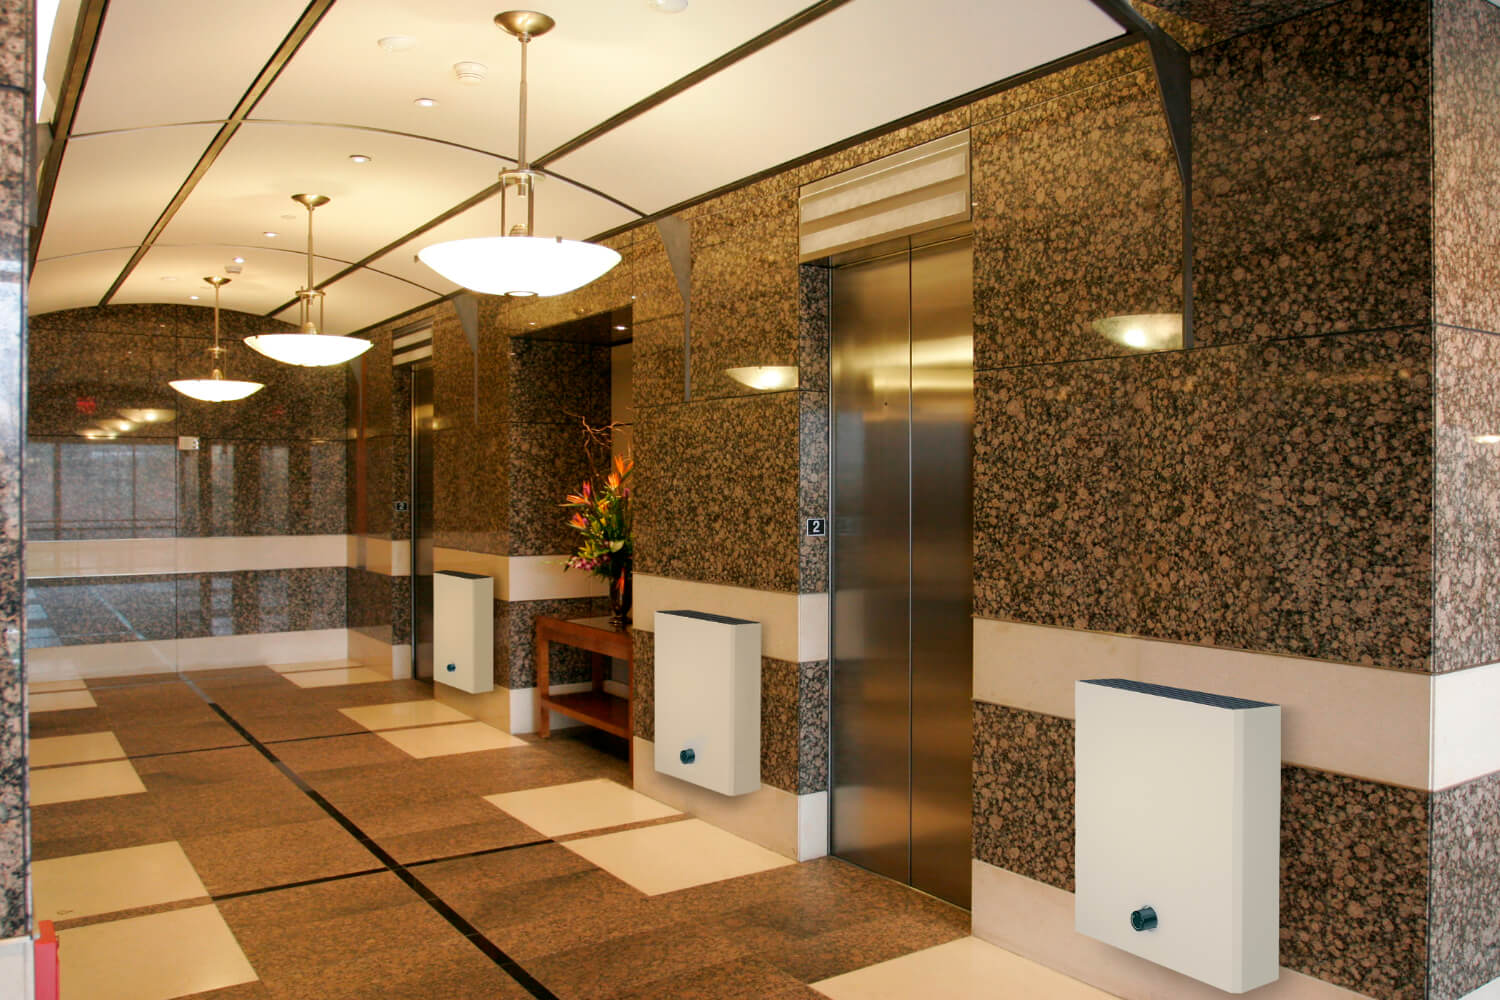 Tomton design radiator r1 bei enoultion the energy solution for Hotel und design